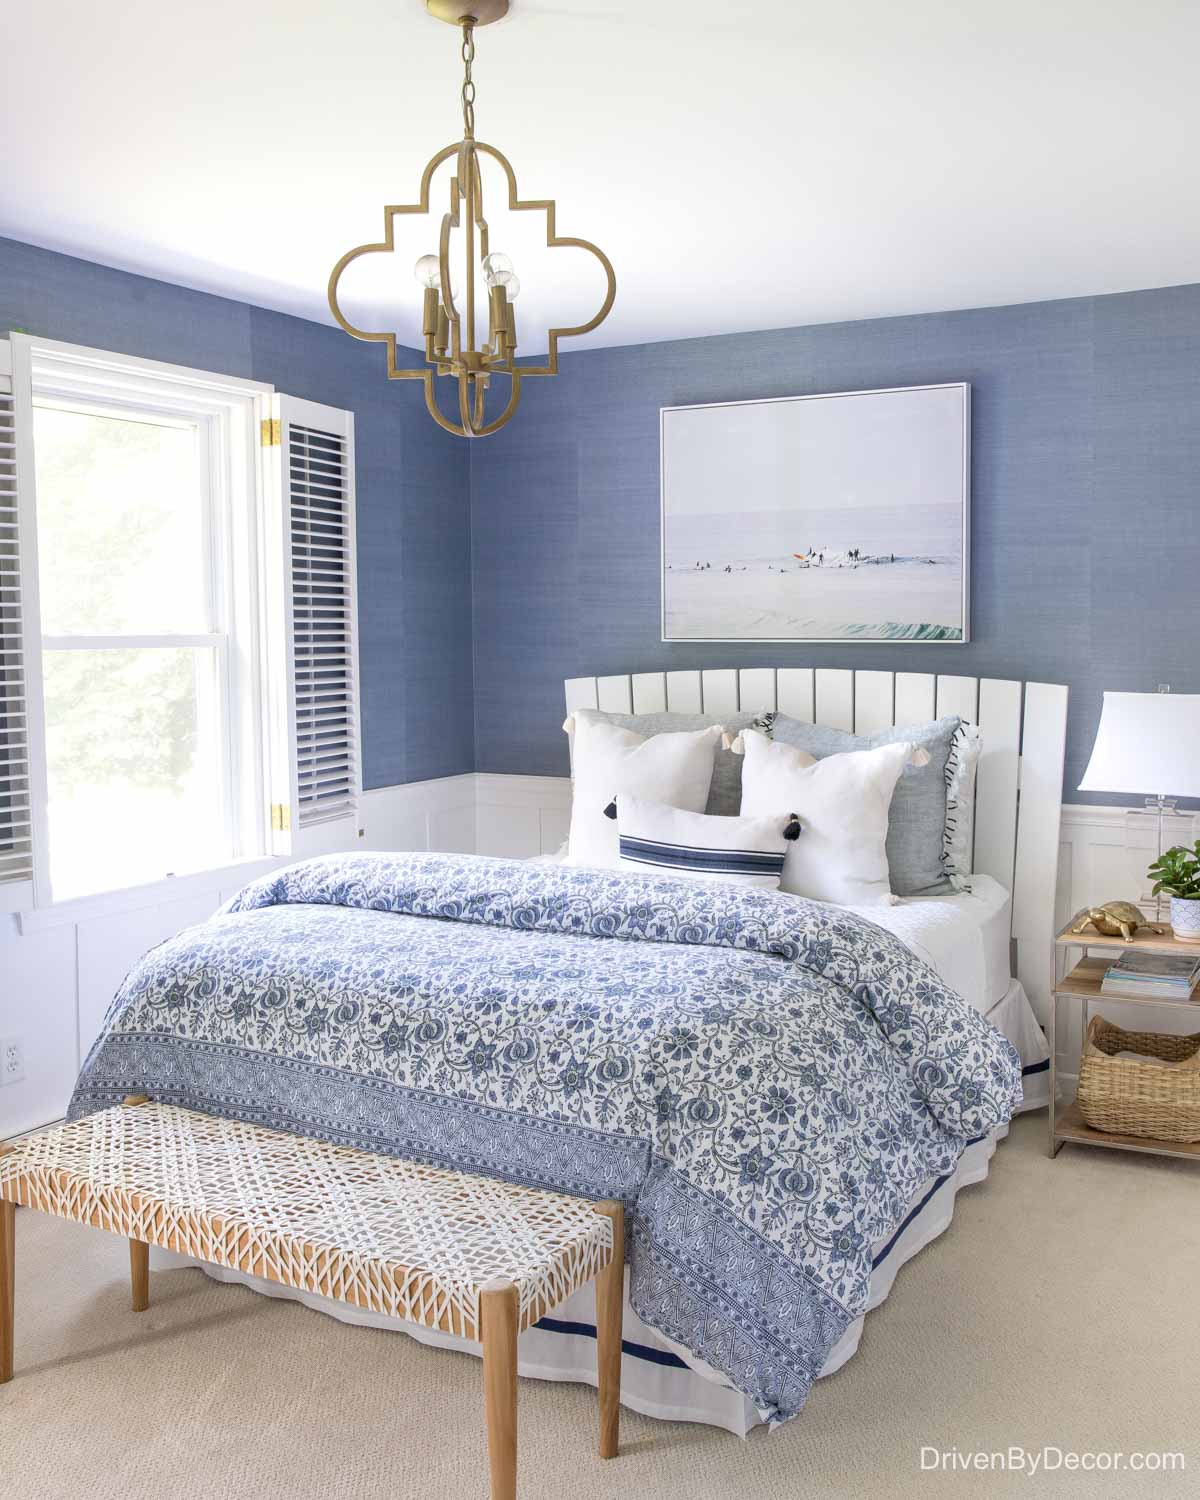 Home remodel: Our blue and white bedroom after remodeling!